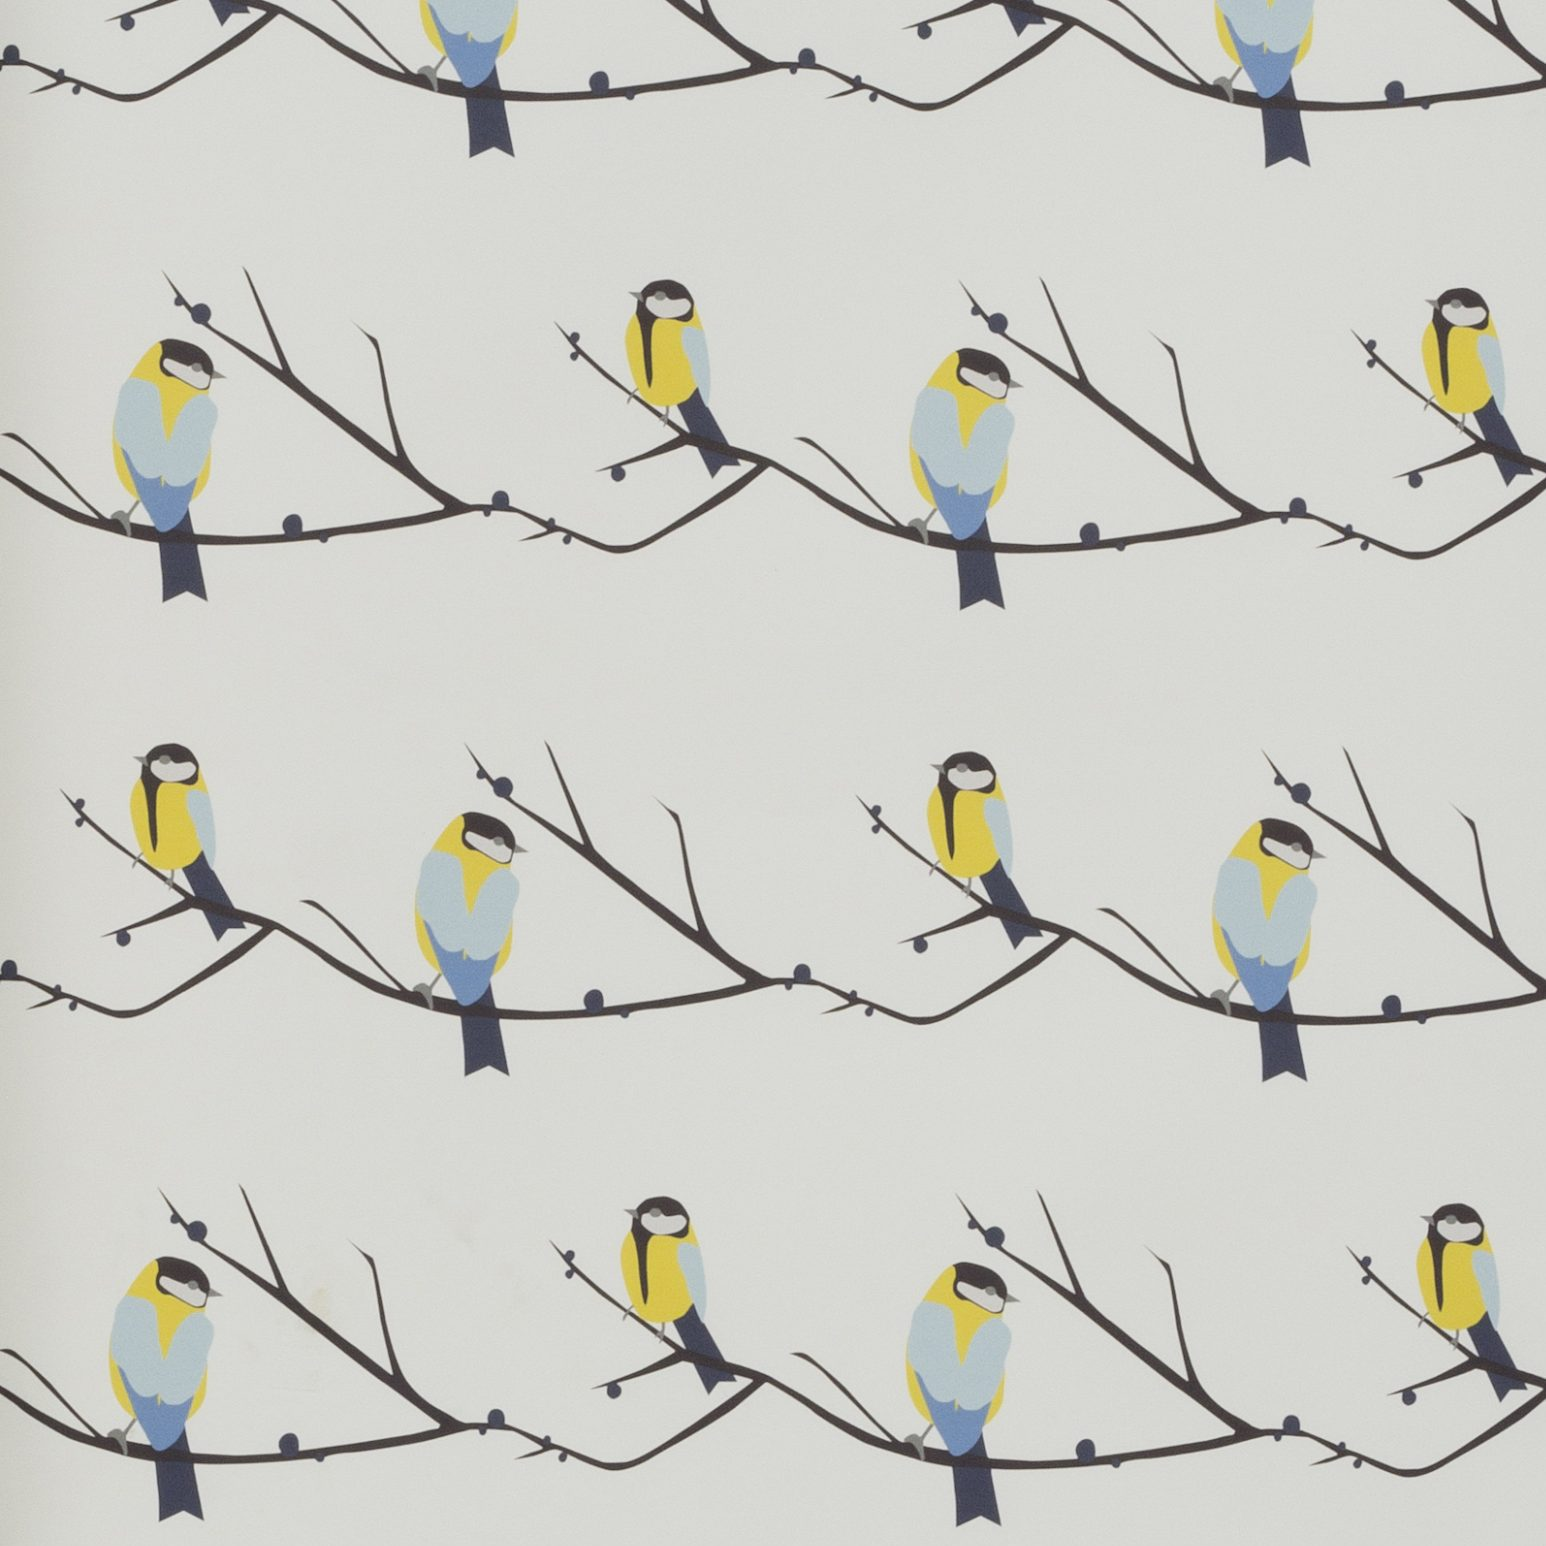 Juneberry & Bird Wallpaper by Lorna Syson Availabel from The Decorcafe Shop